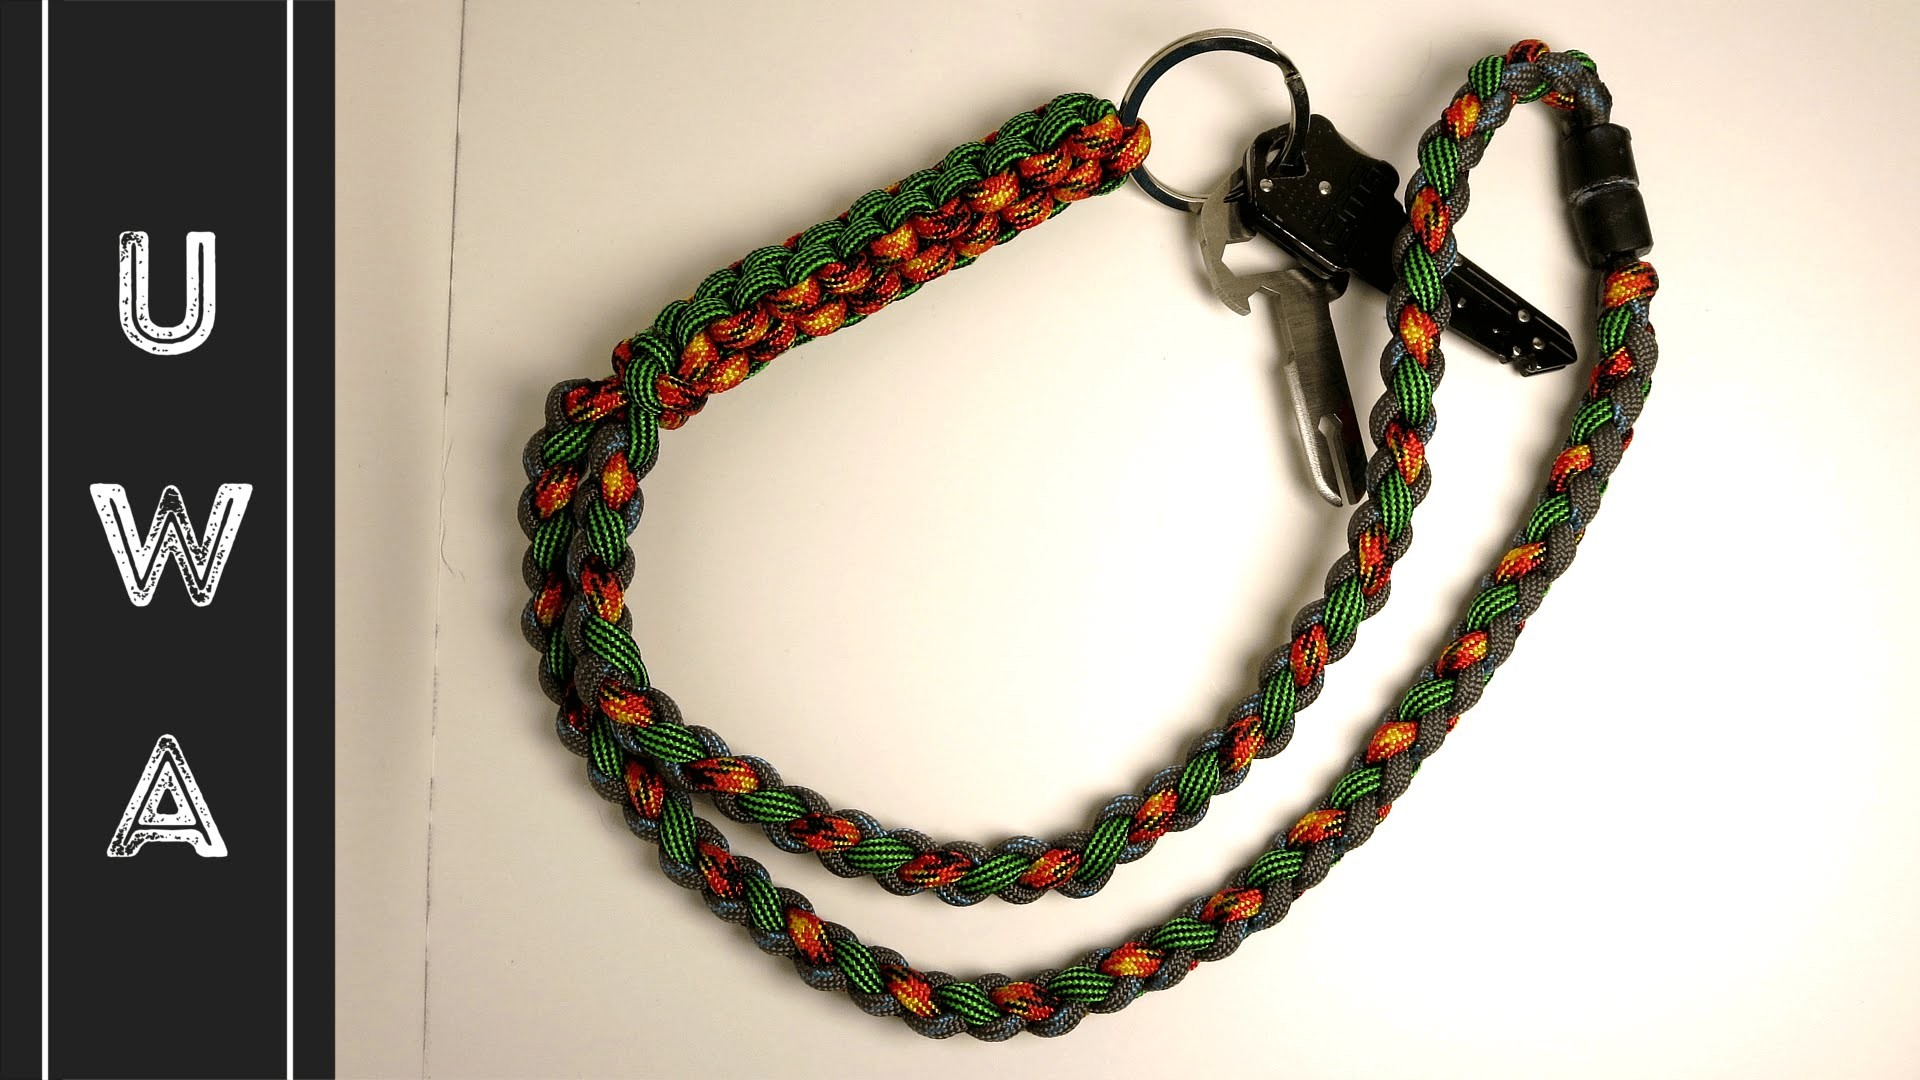 How To Tie A Four Strand Crown And Diamond Knot Paracord